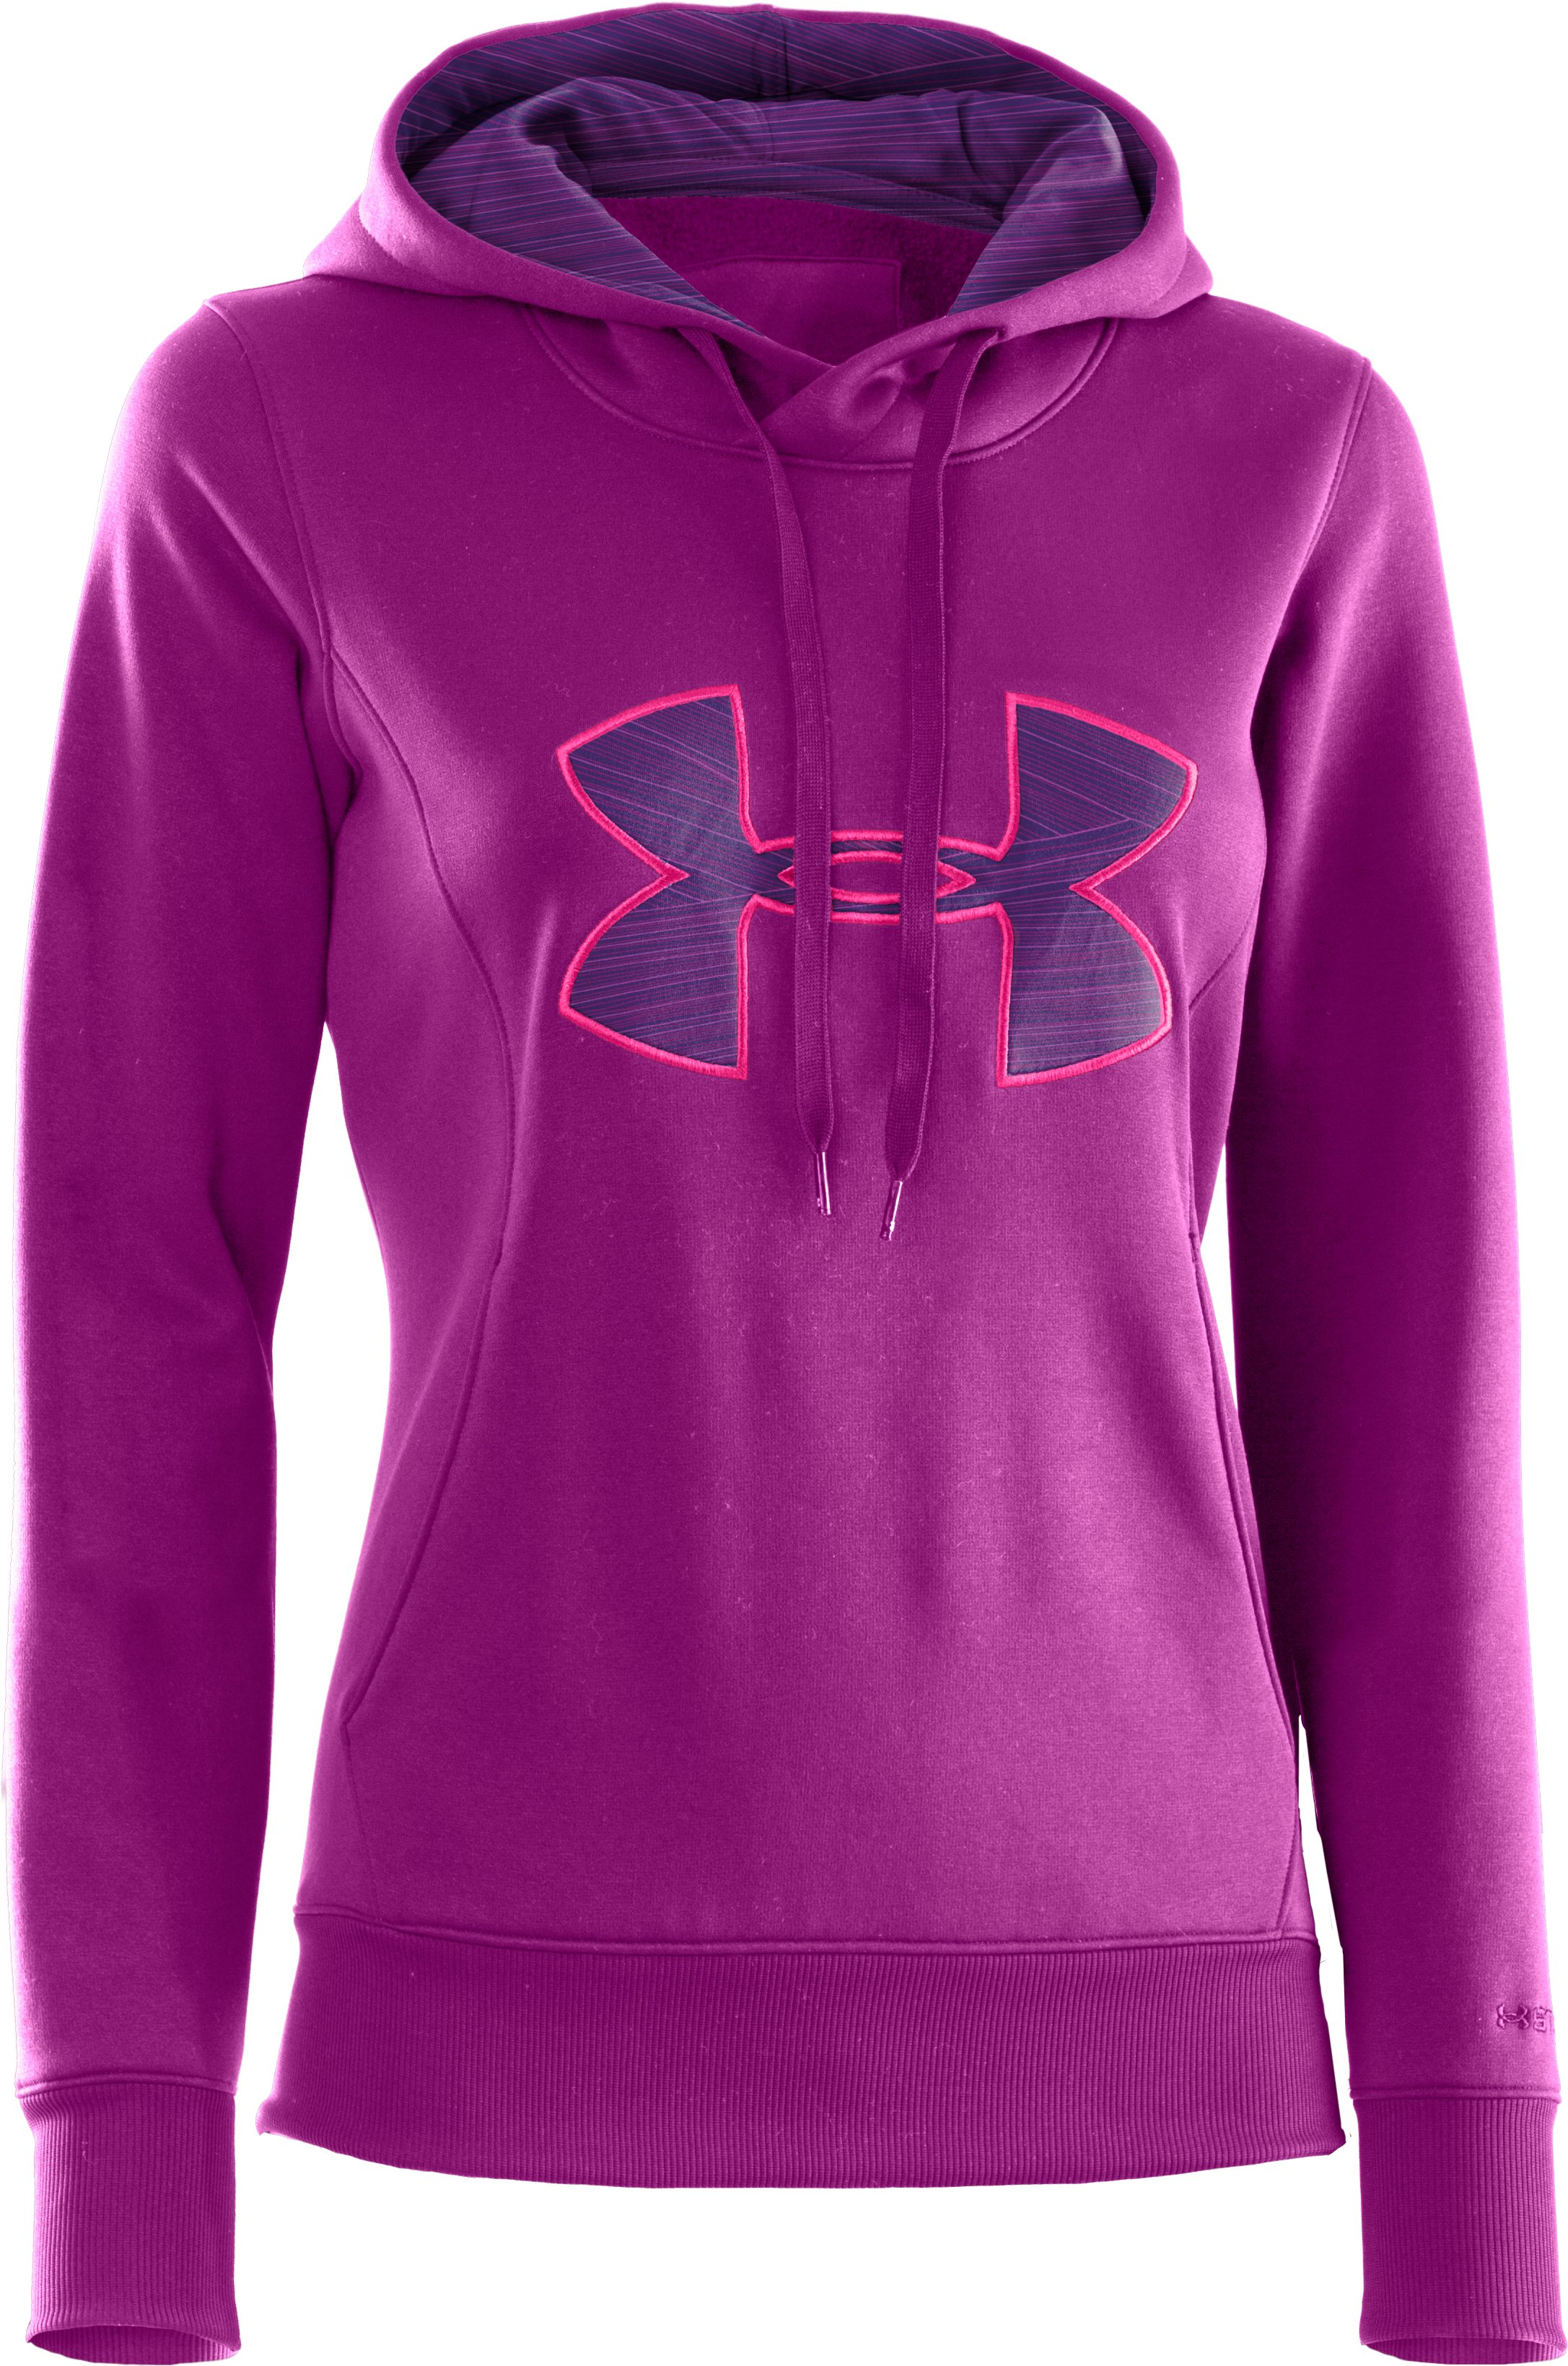 Women's Armour® Fleece Storm Big Logo Hoodie, STROBE